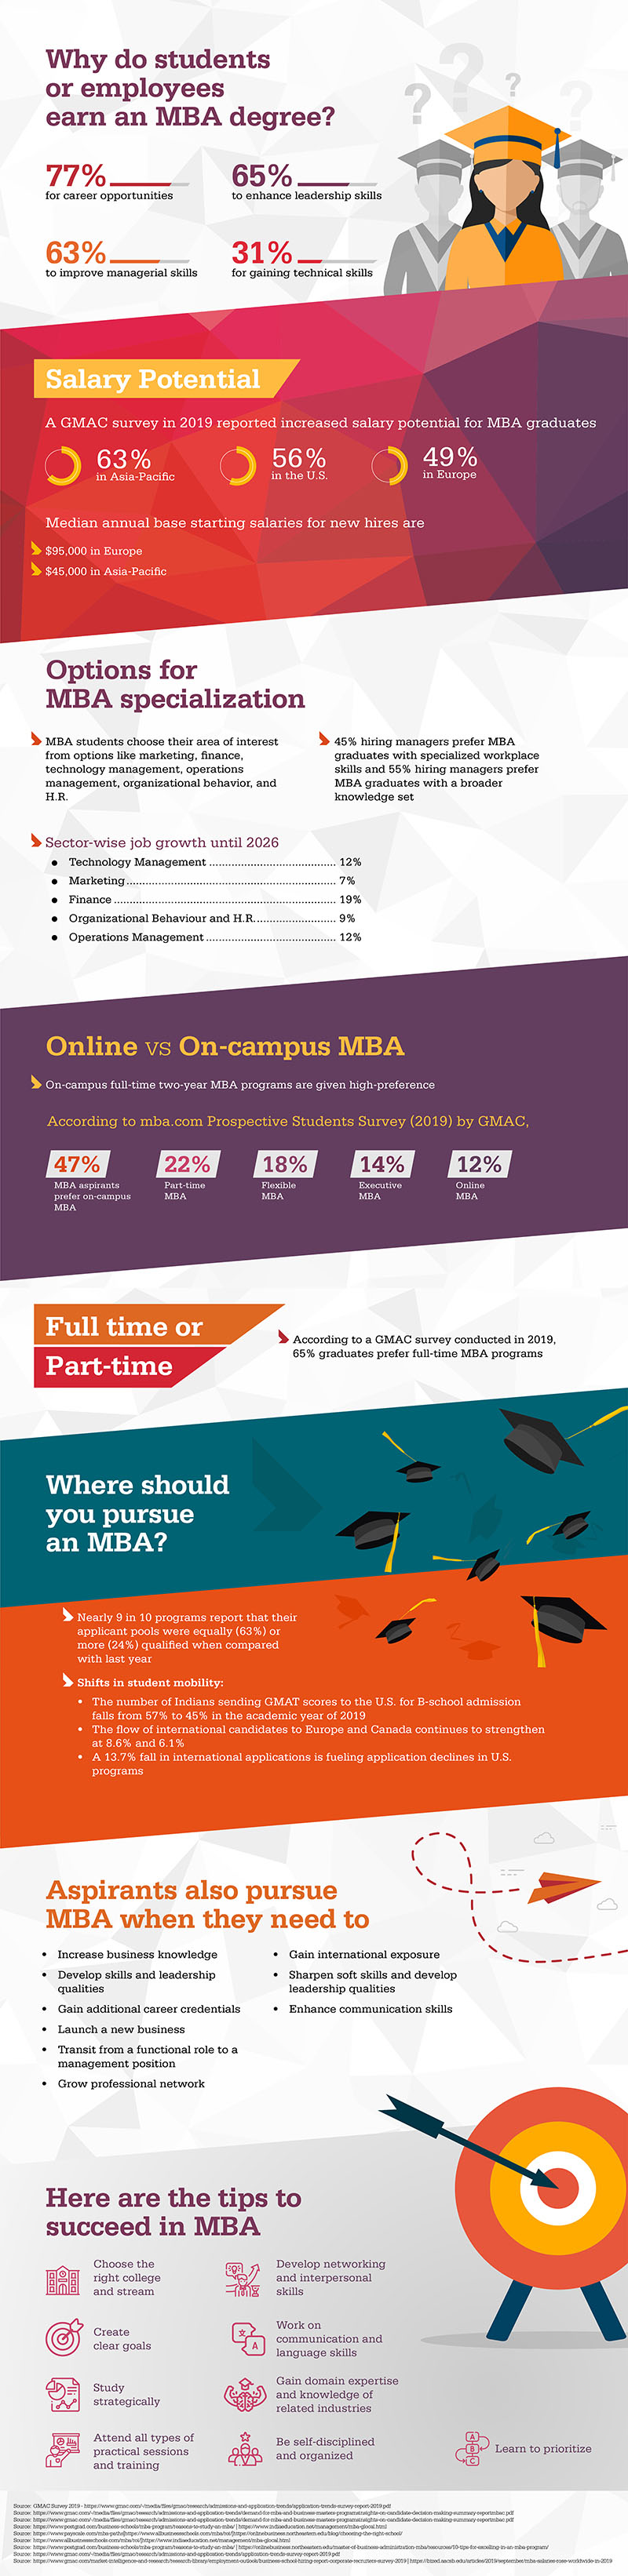 Why Do Students or Employees Earn an MBA Degree?